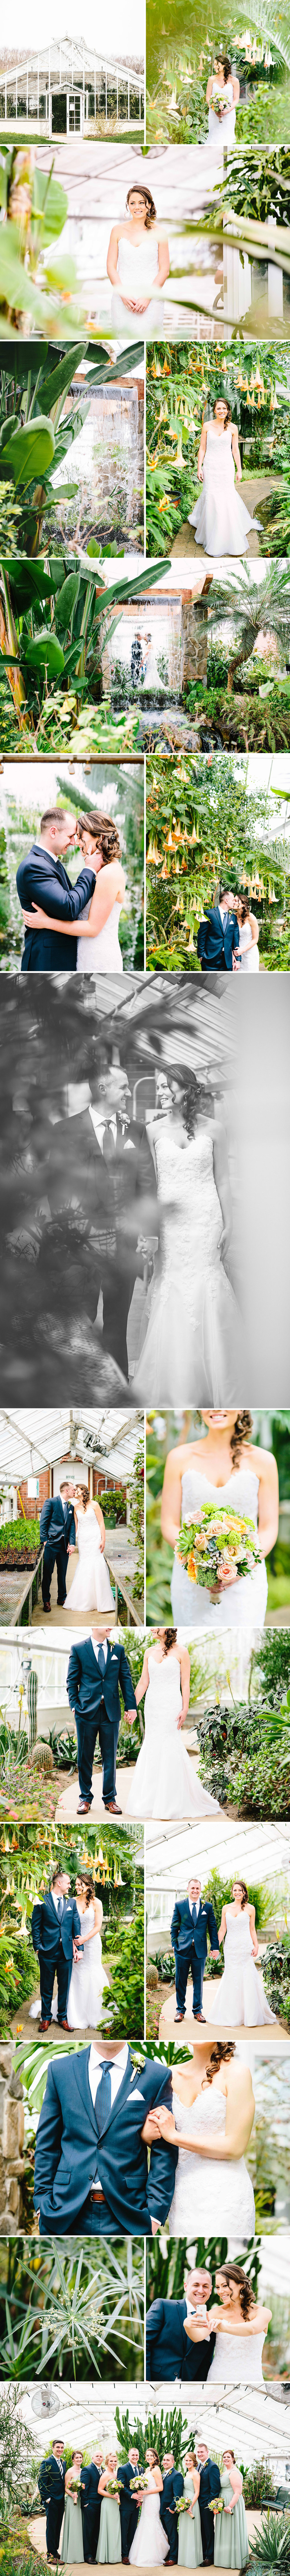 chicago-fine-art-wedding-photography-scallate